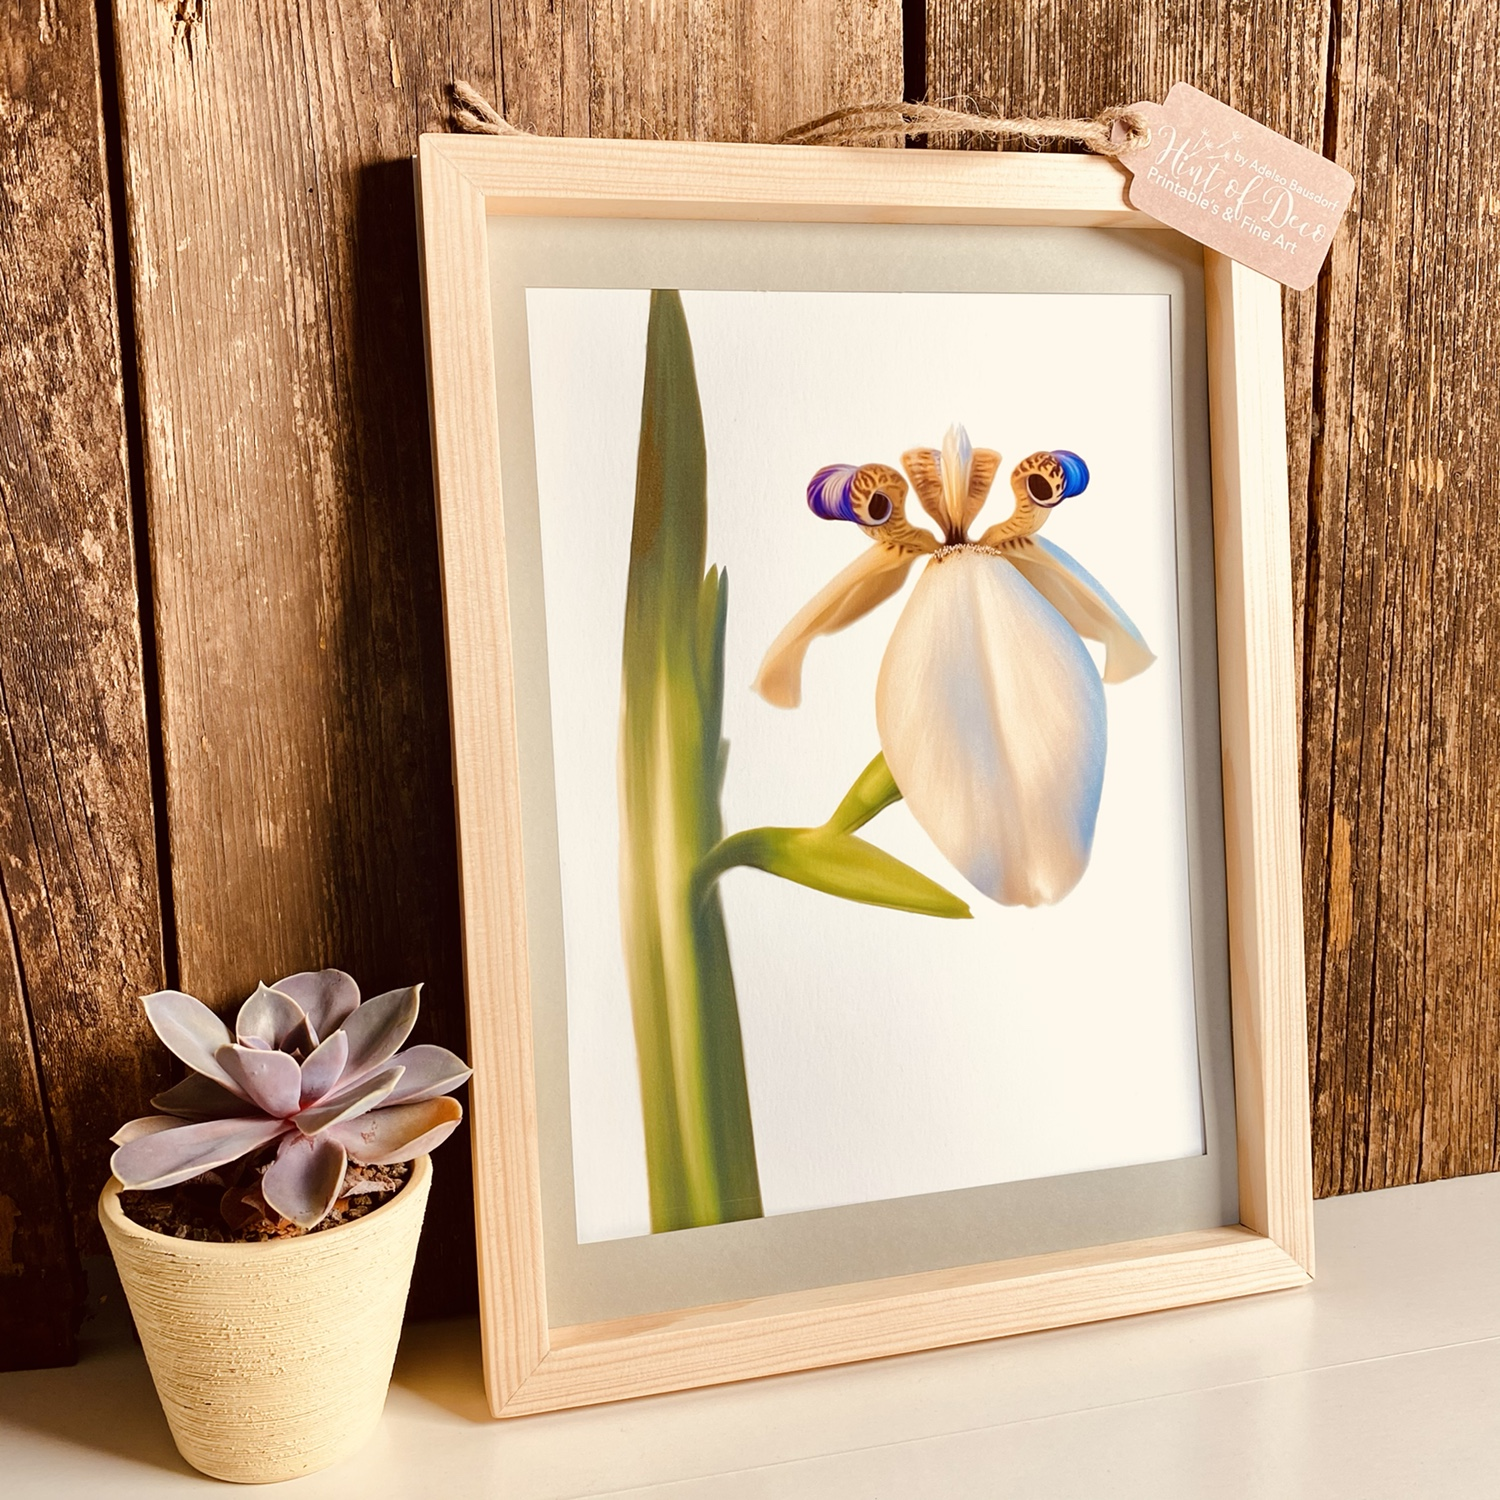 Details of the final product in a natural wood frame Collection of flower illustrations (neomarica gracilis)